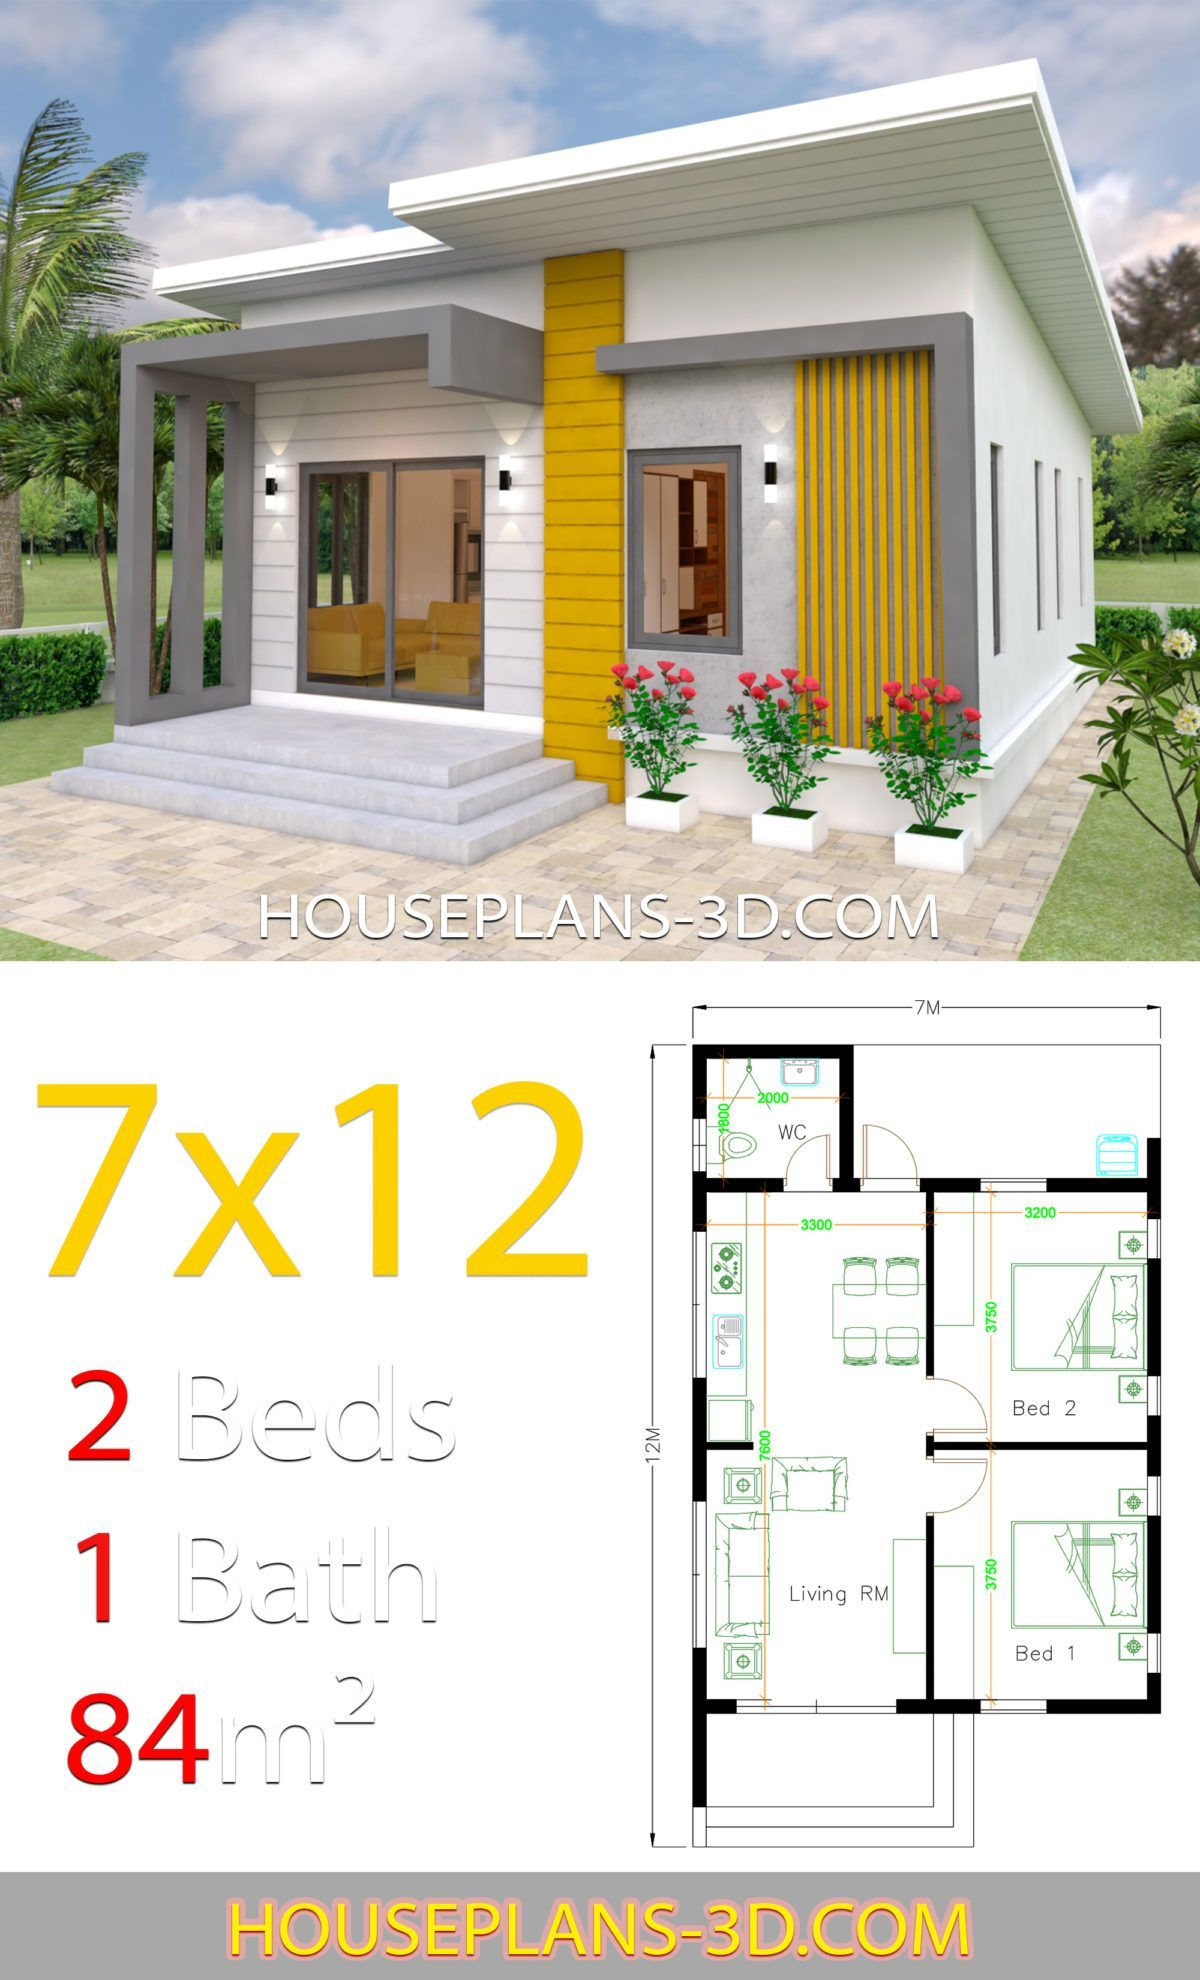 Most Recent Images Garden Plans Autocad Ideas What Should I Plant Simply How Much Should I Plant And Small House Design Plans Small House Design House Plans